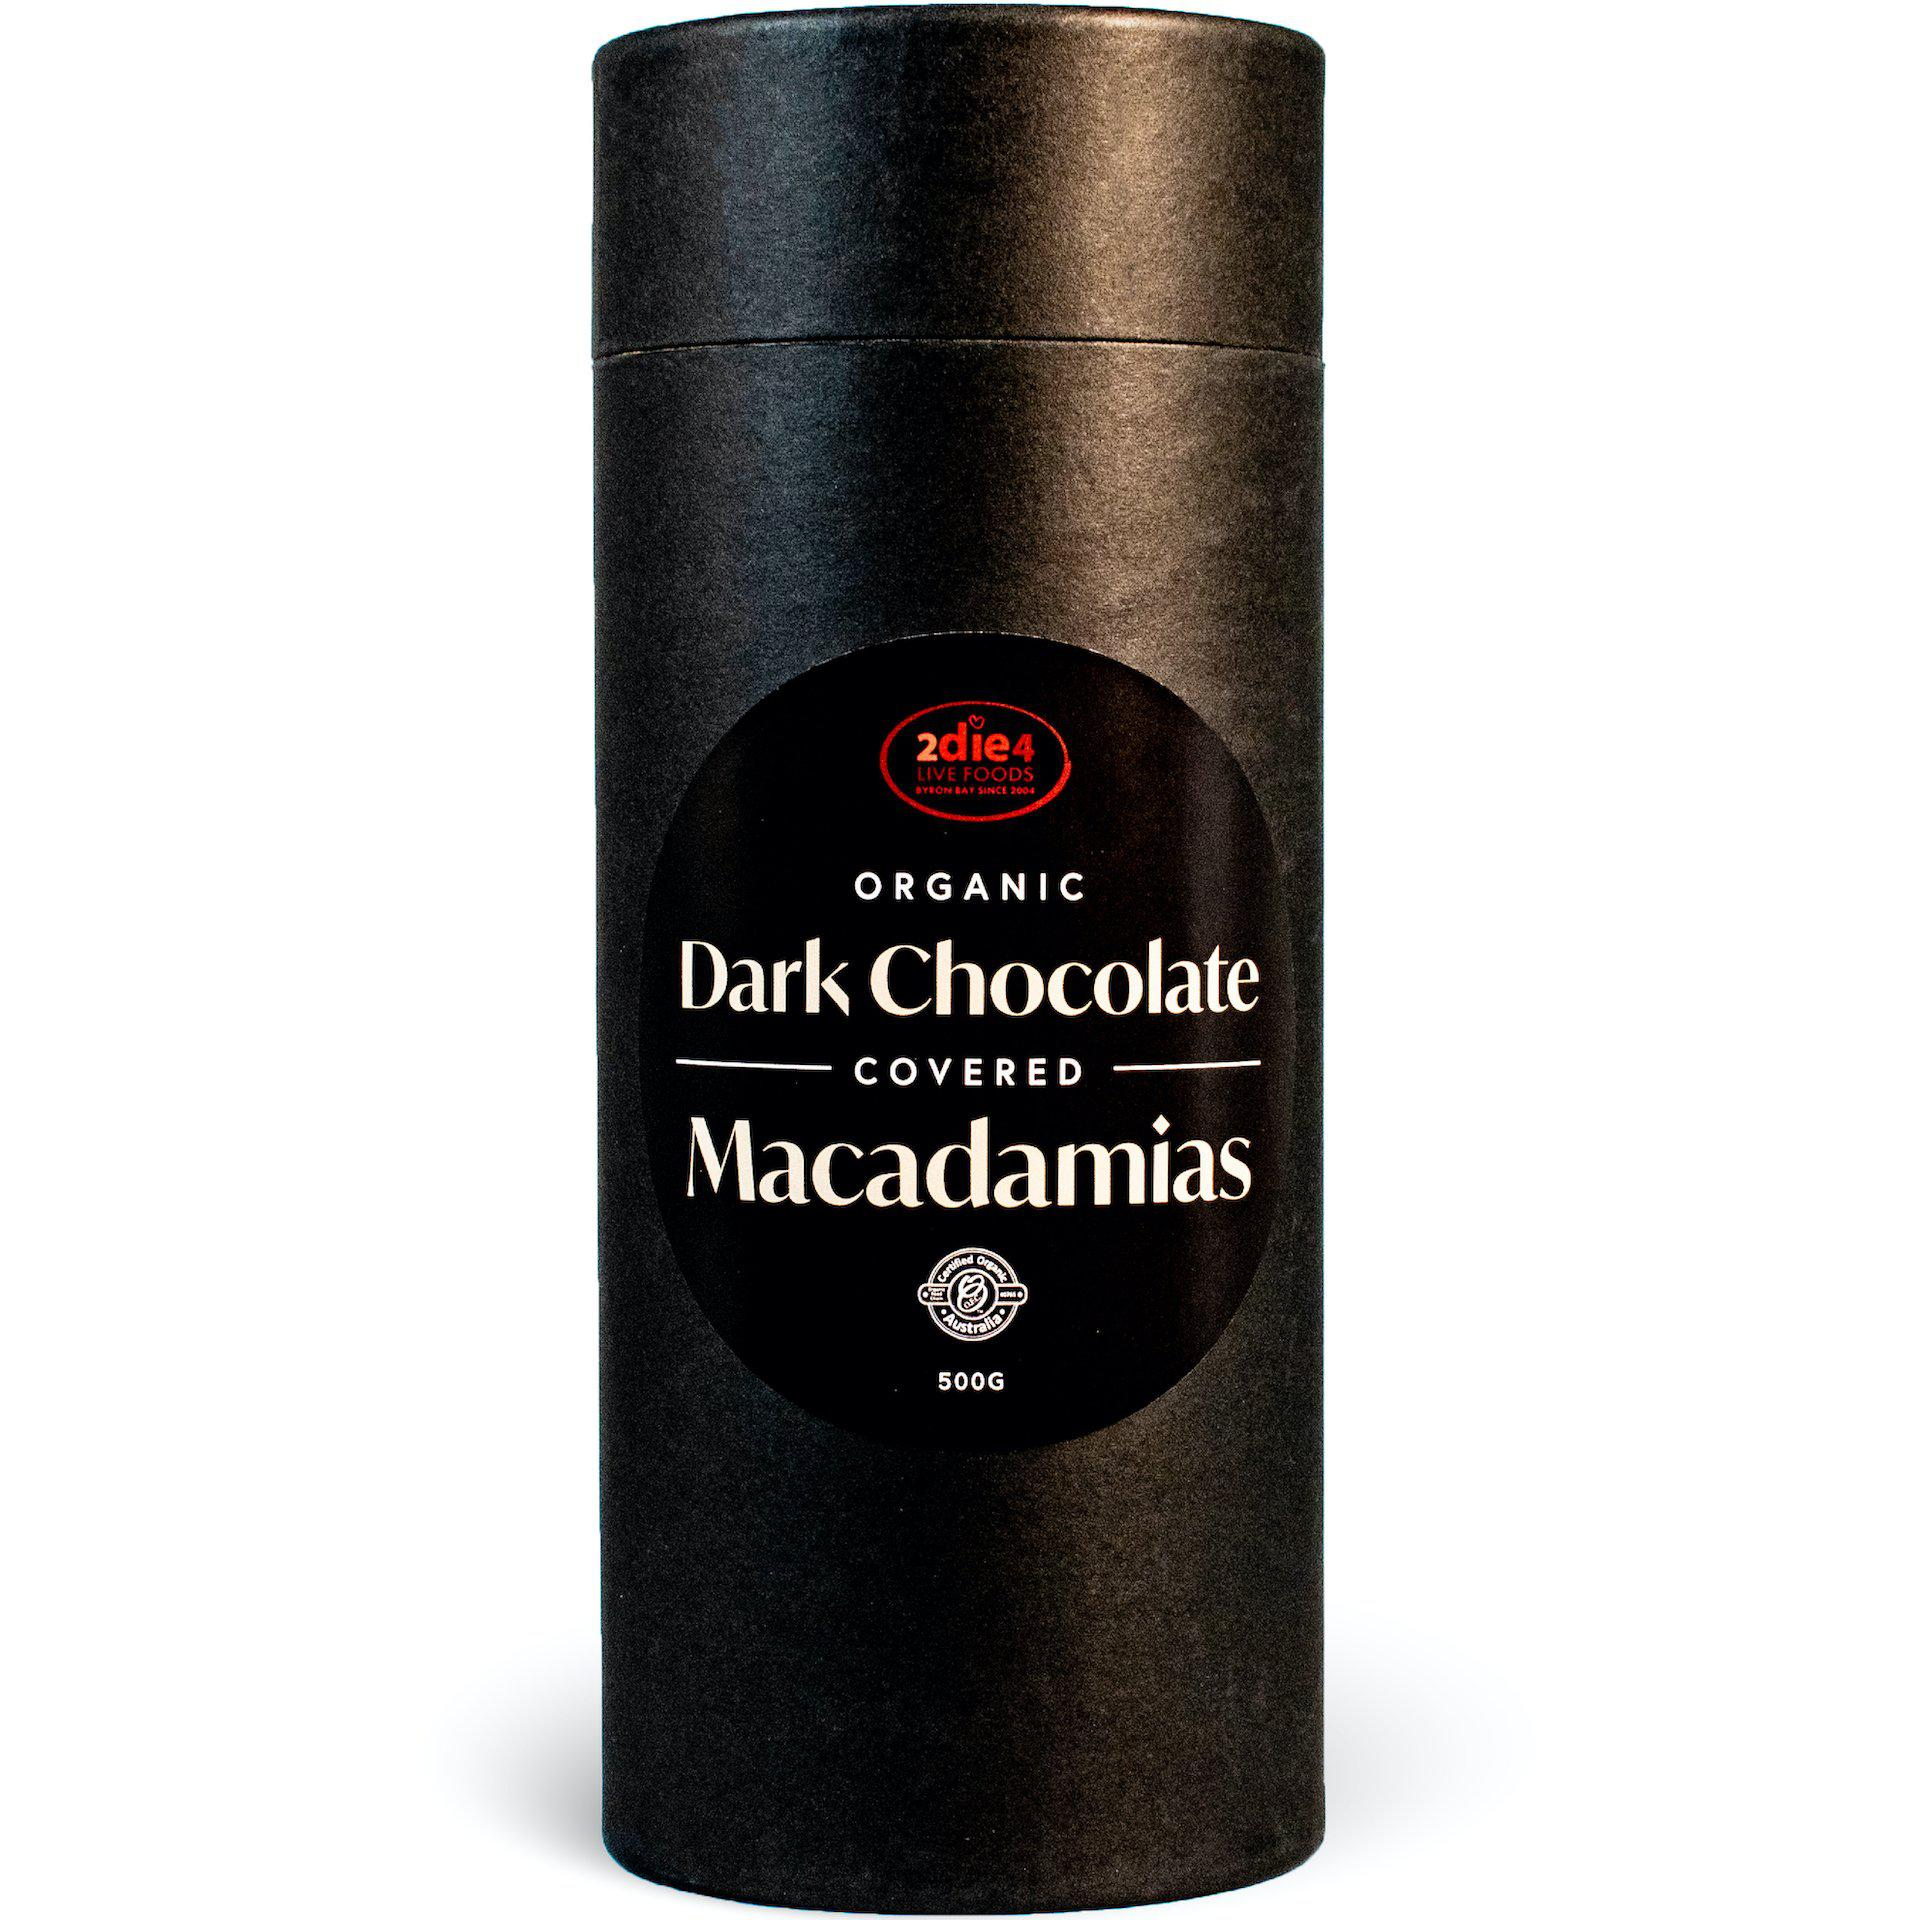 Organic Dark Chocolate Coated Macadamias - 2die4livefoods